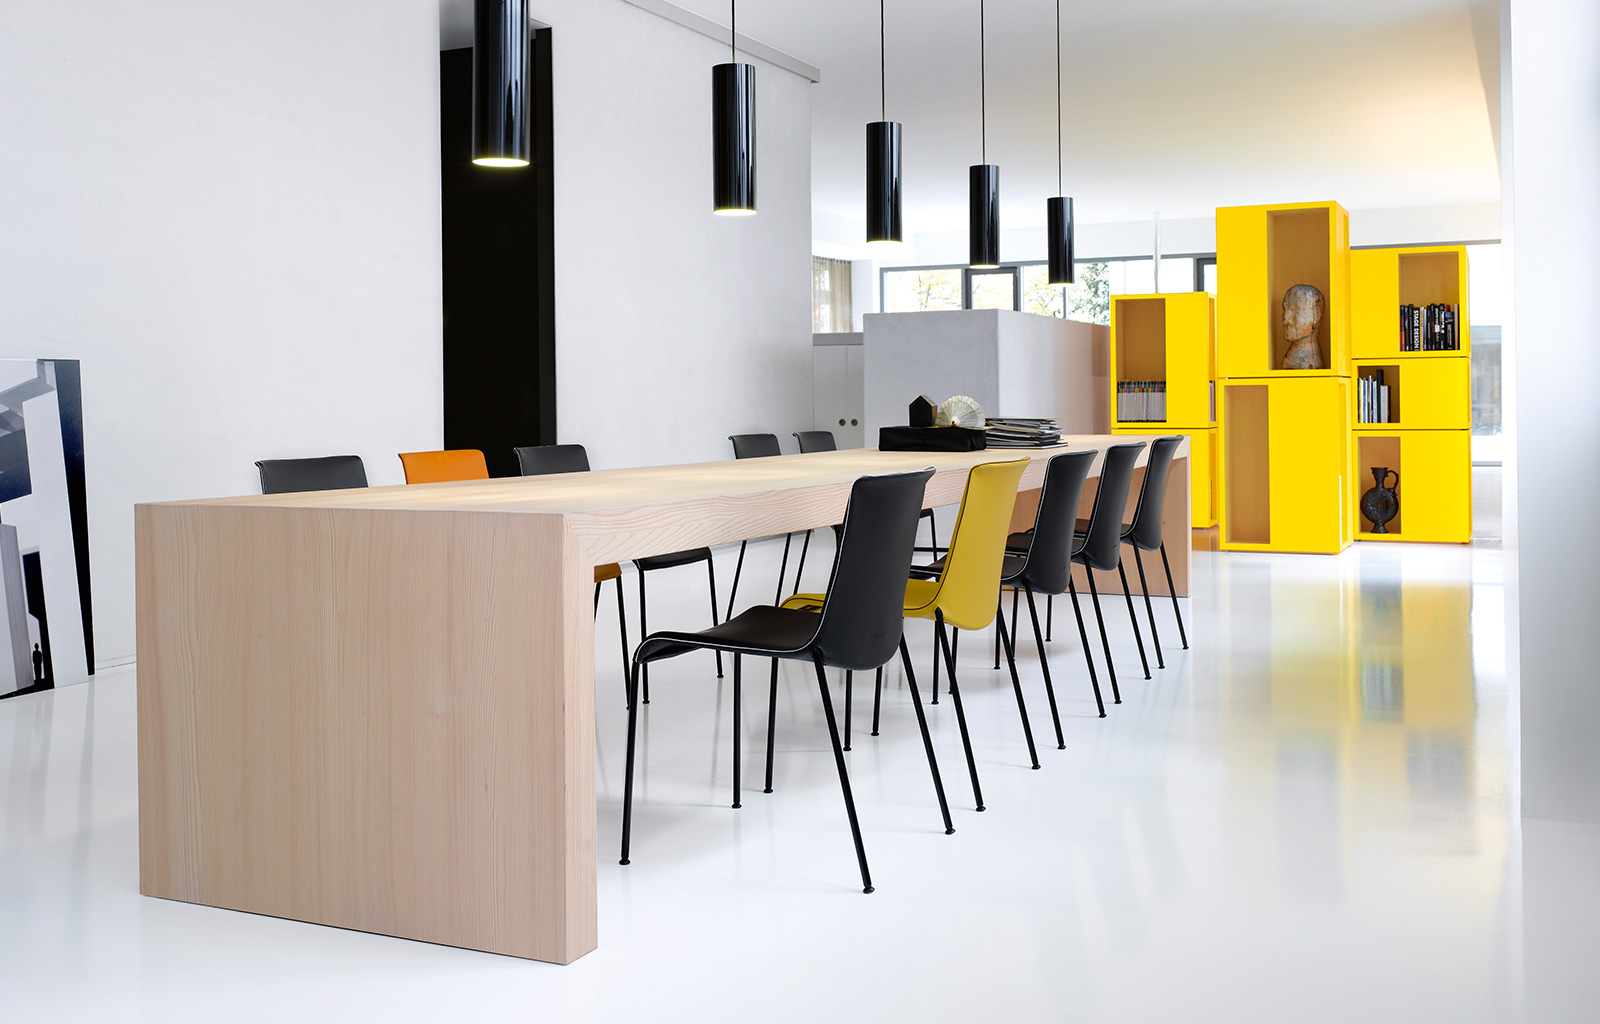 WALTER KNOLL<br>a brand of the modern age